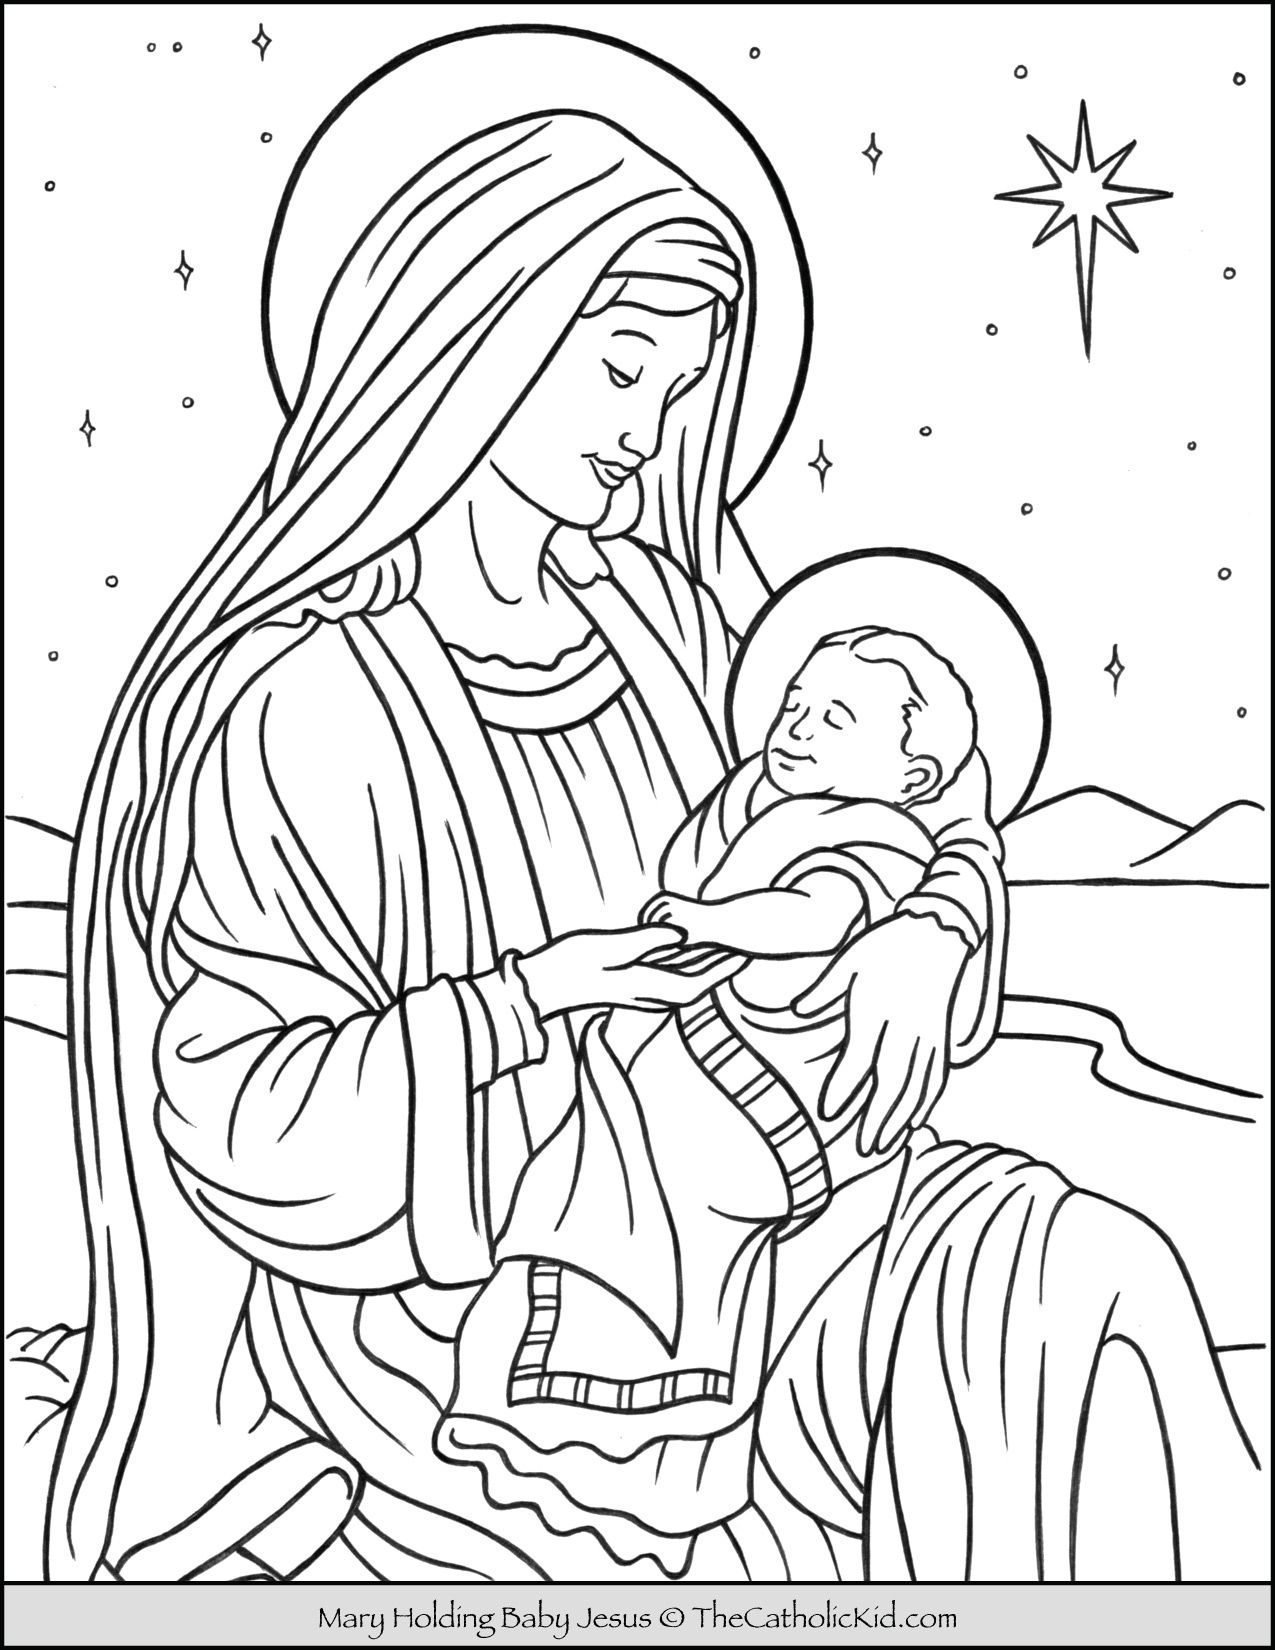 Mary With Baby Jesus In Bethlehem Coloring Page Thecatholickid Com In 2021 Jesus Coloring Pages Coloring Pages Catholic Coloring